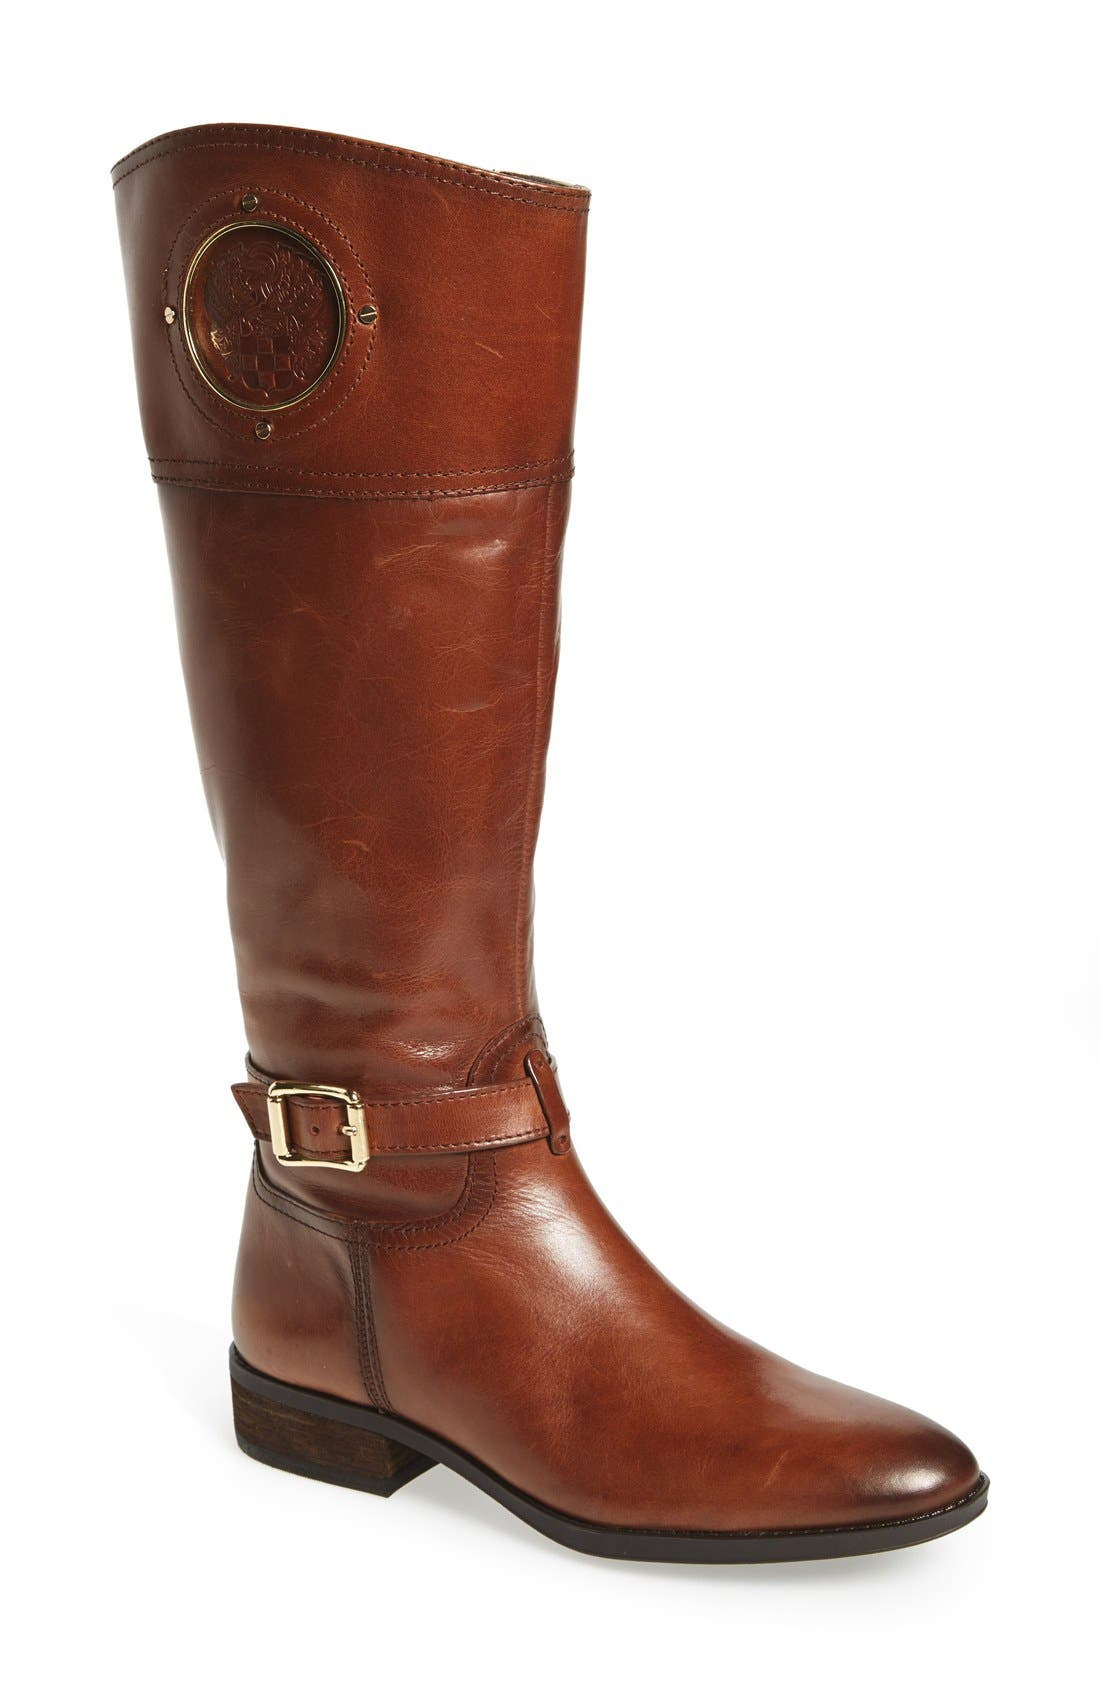 Alternate Image 1 Selected - Vince Camuto 'Phillie' Tall Riding Boot (Women) (Regular & Extended Calf)